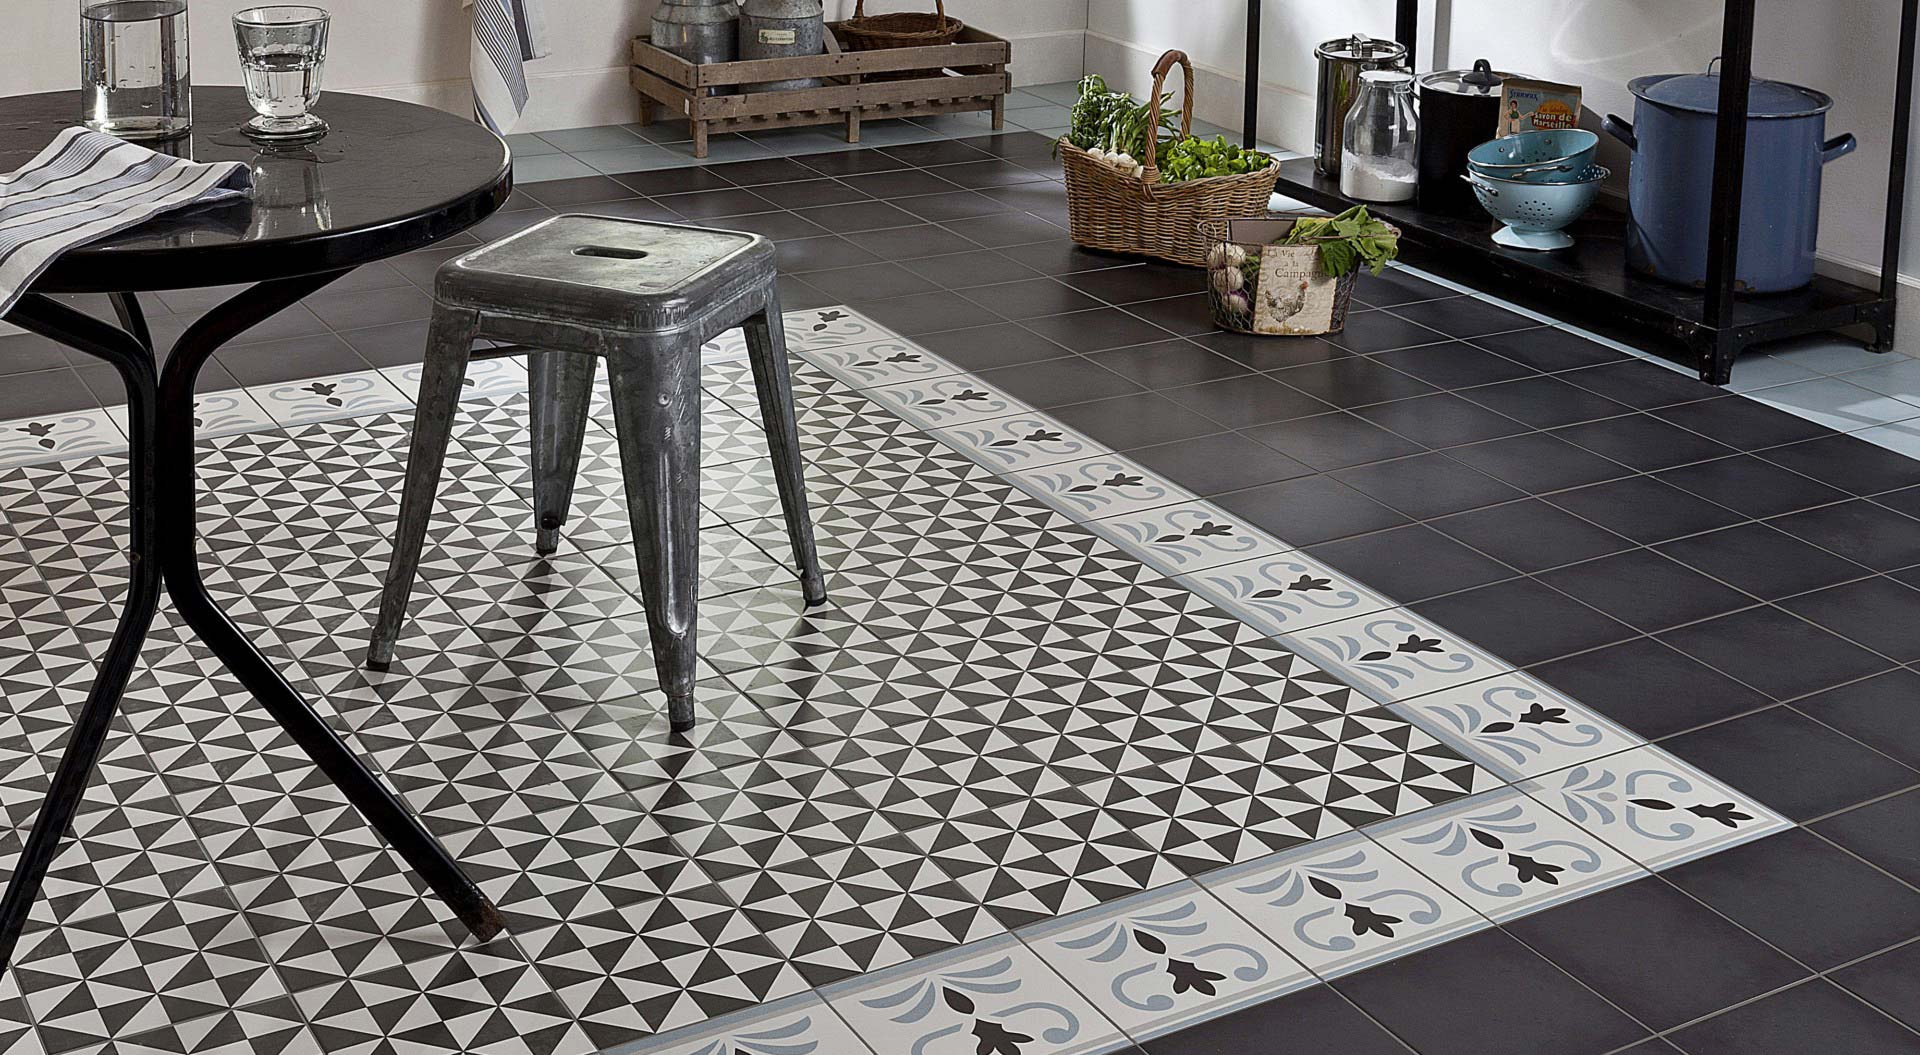 Tapis en carreaux ciment - Carreau ciment credence ...